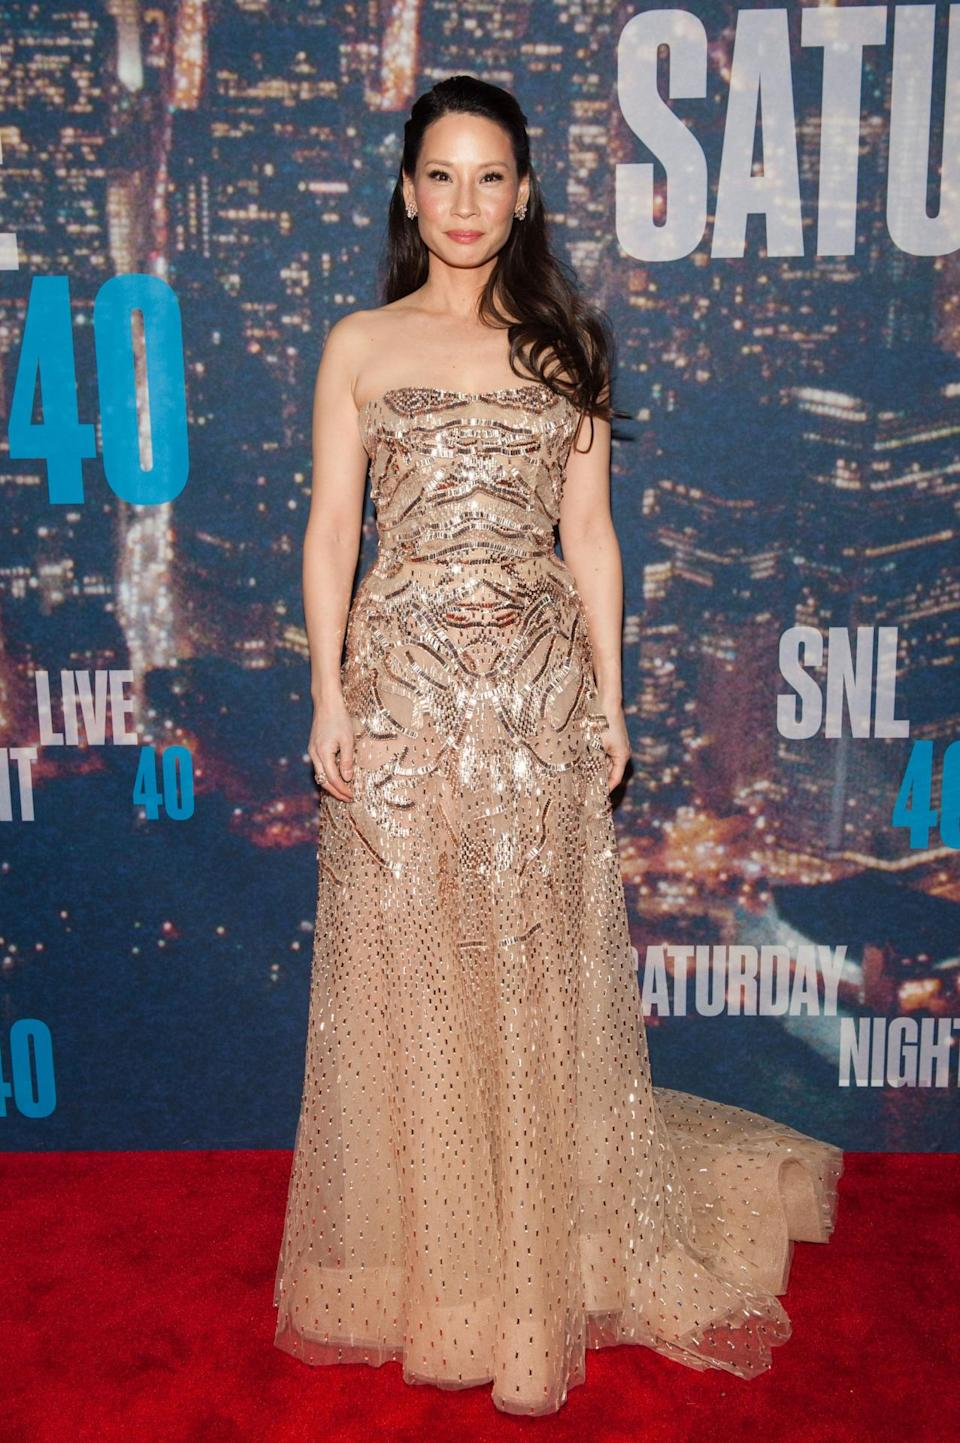 Escorting her Ally McBeal co-star to the anniversary show, Lucy Liu wore a nude sequin gown.